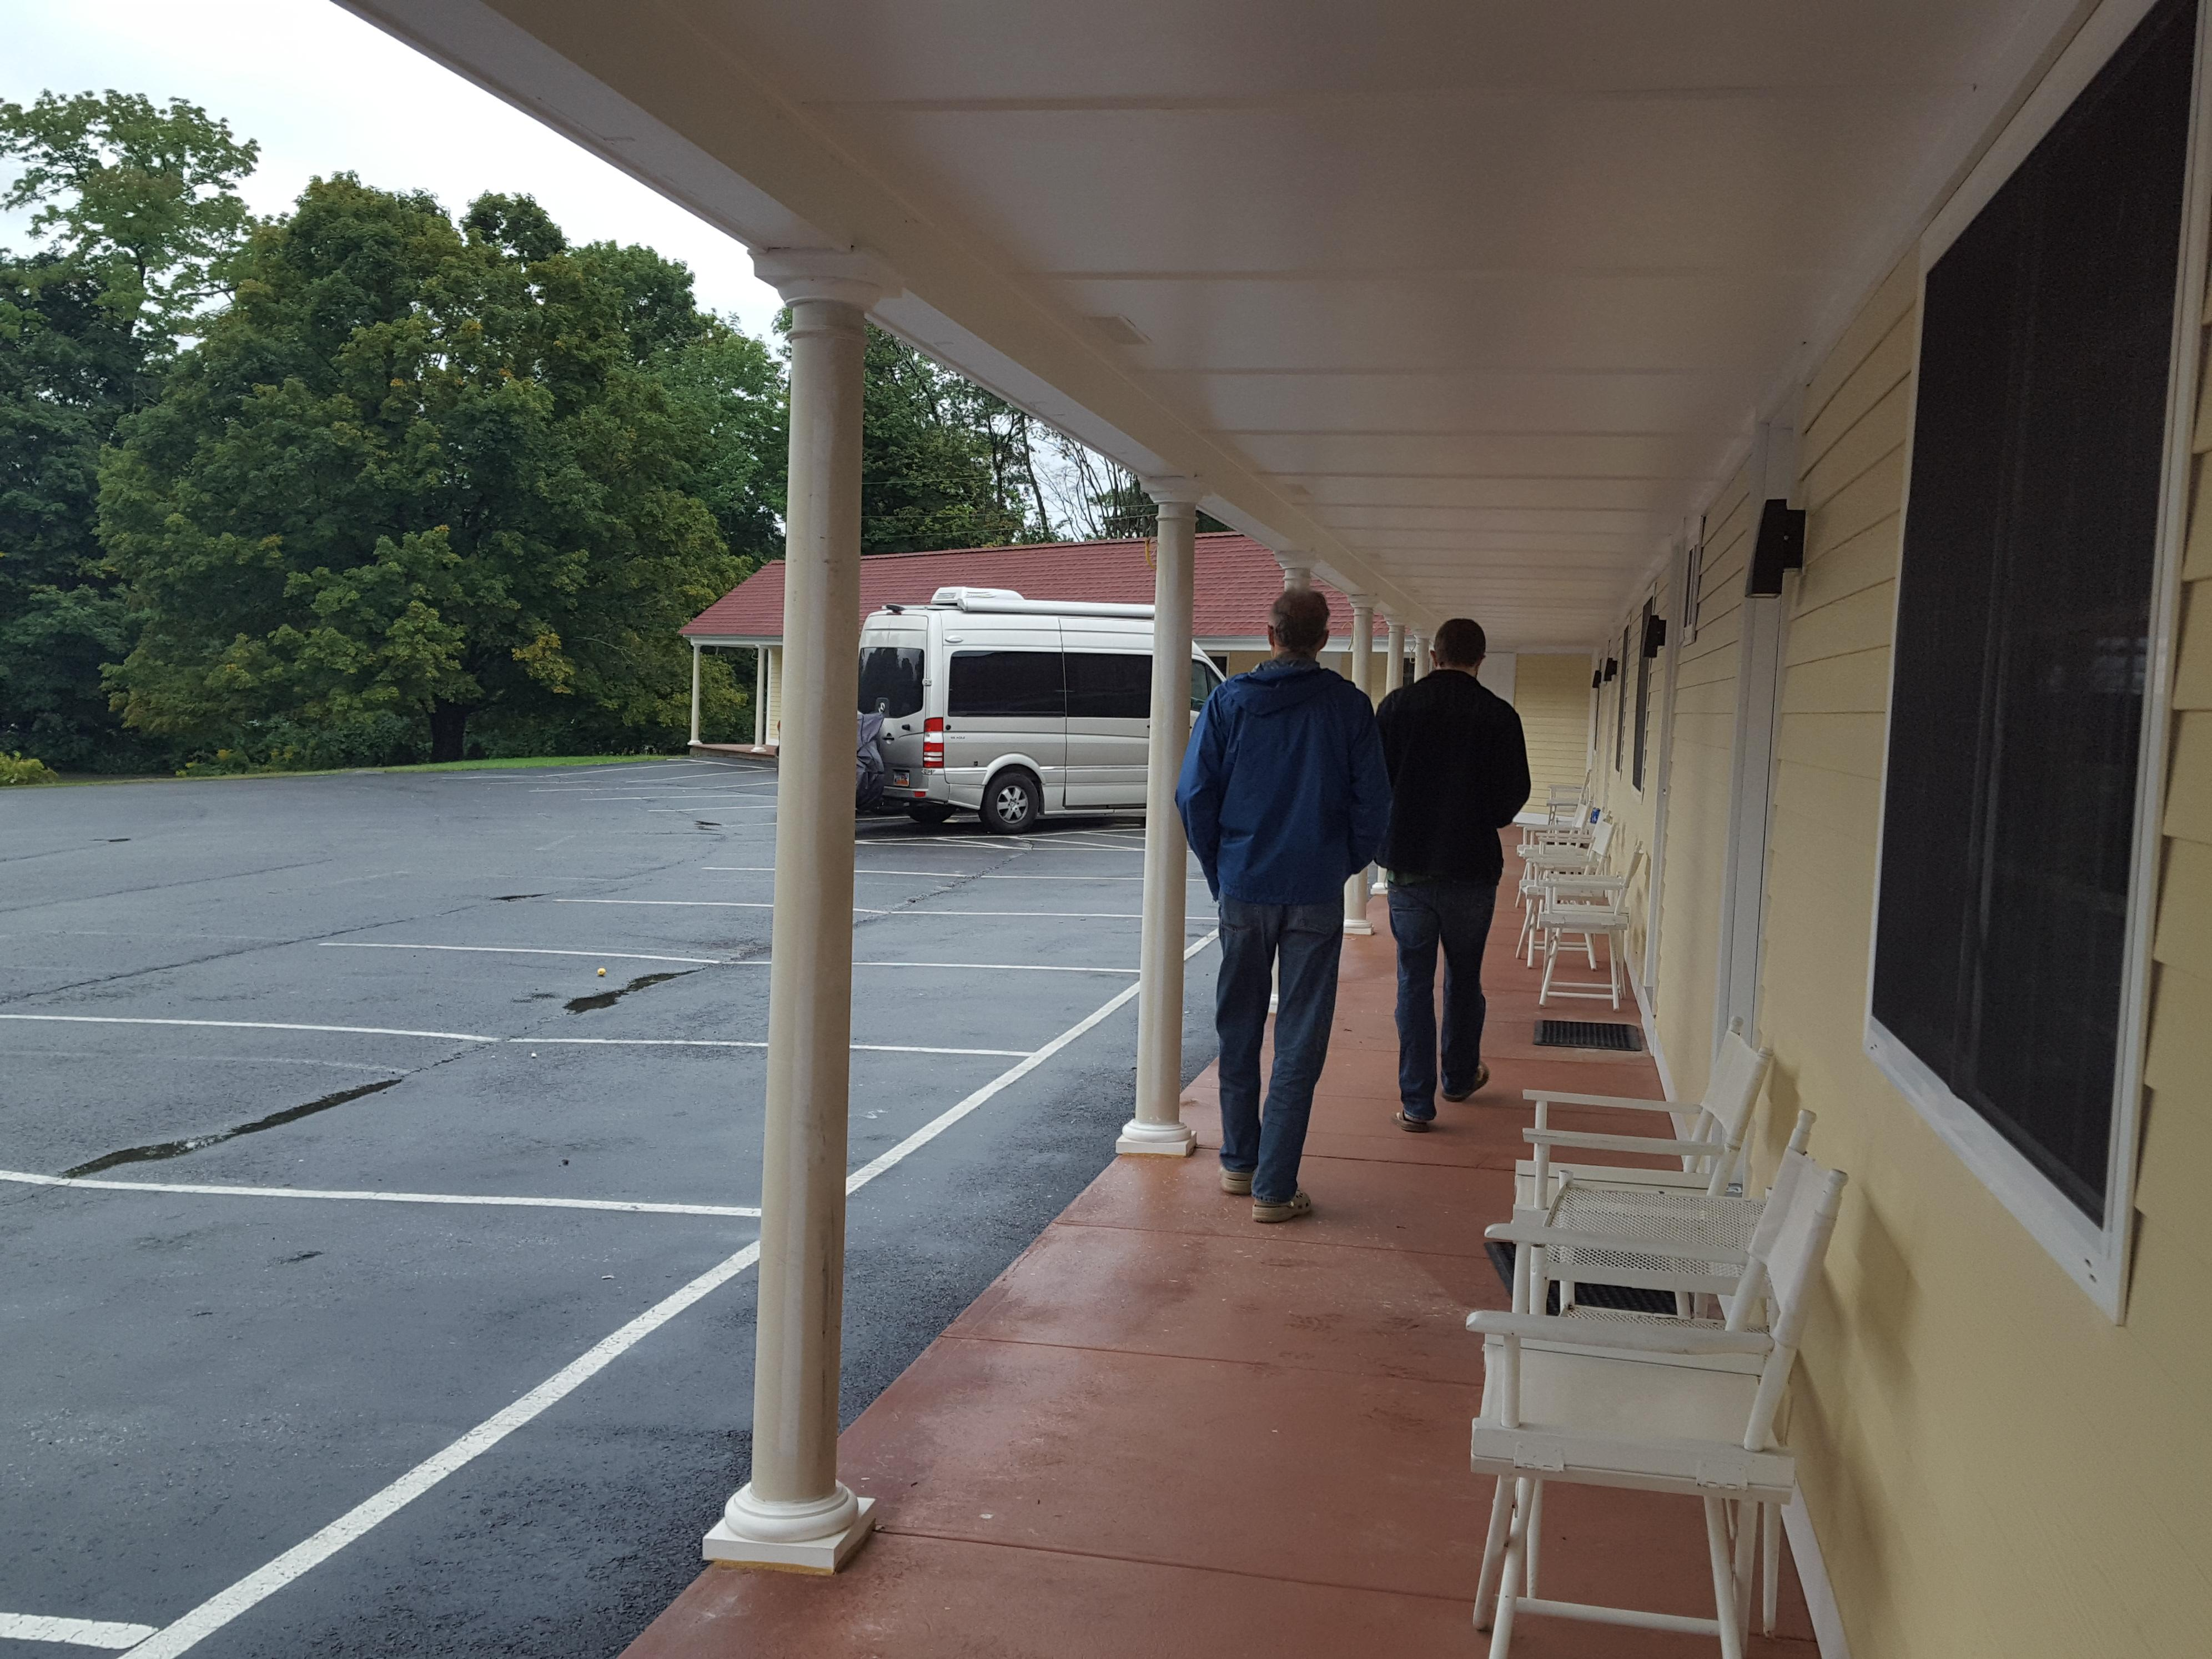 Each room has chairs and tables outside and has a covered walkway to the lobby